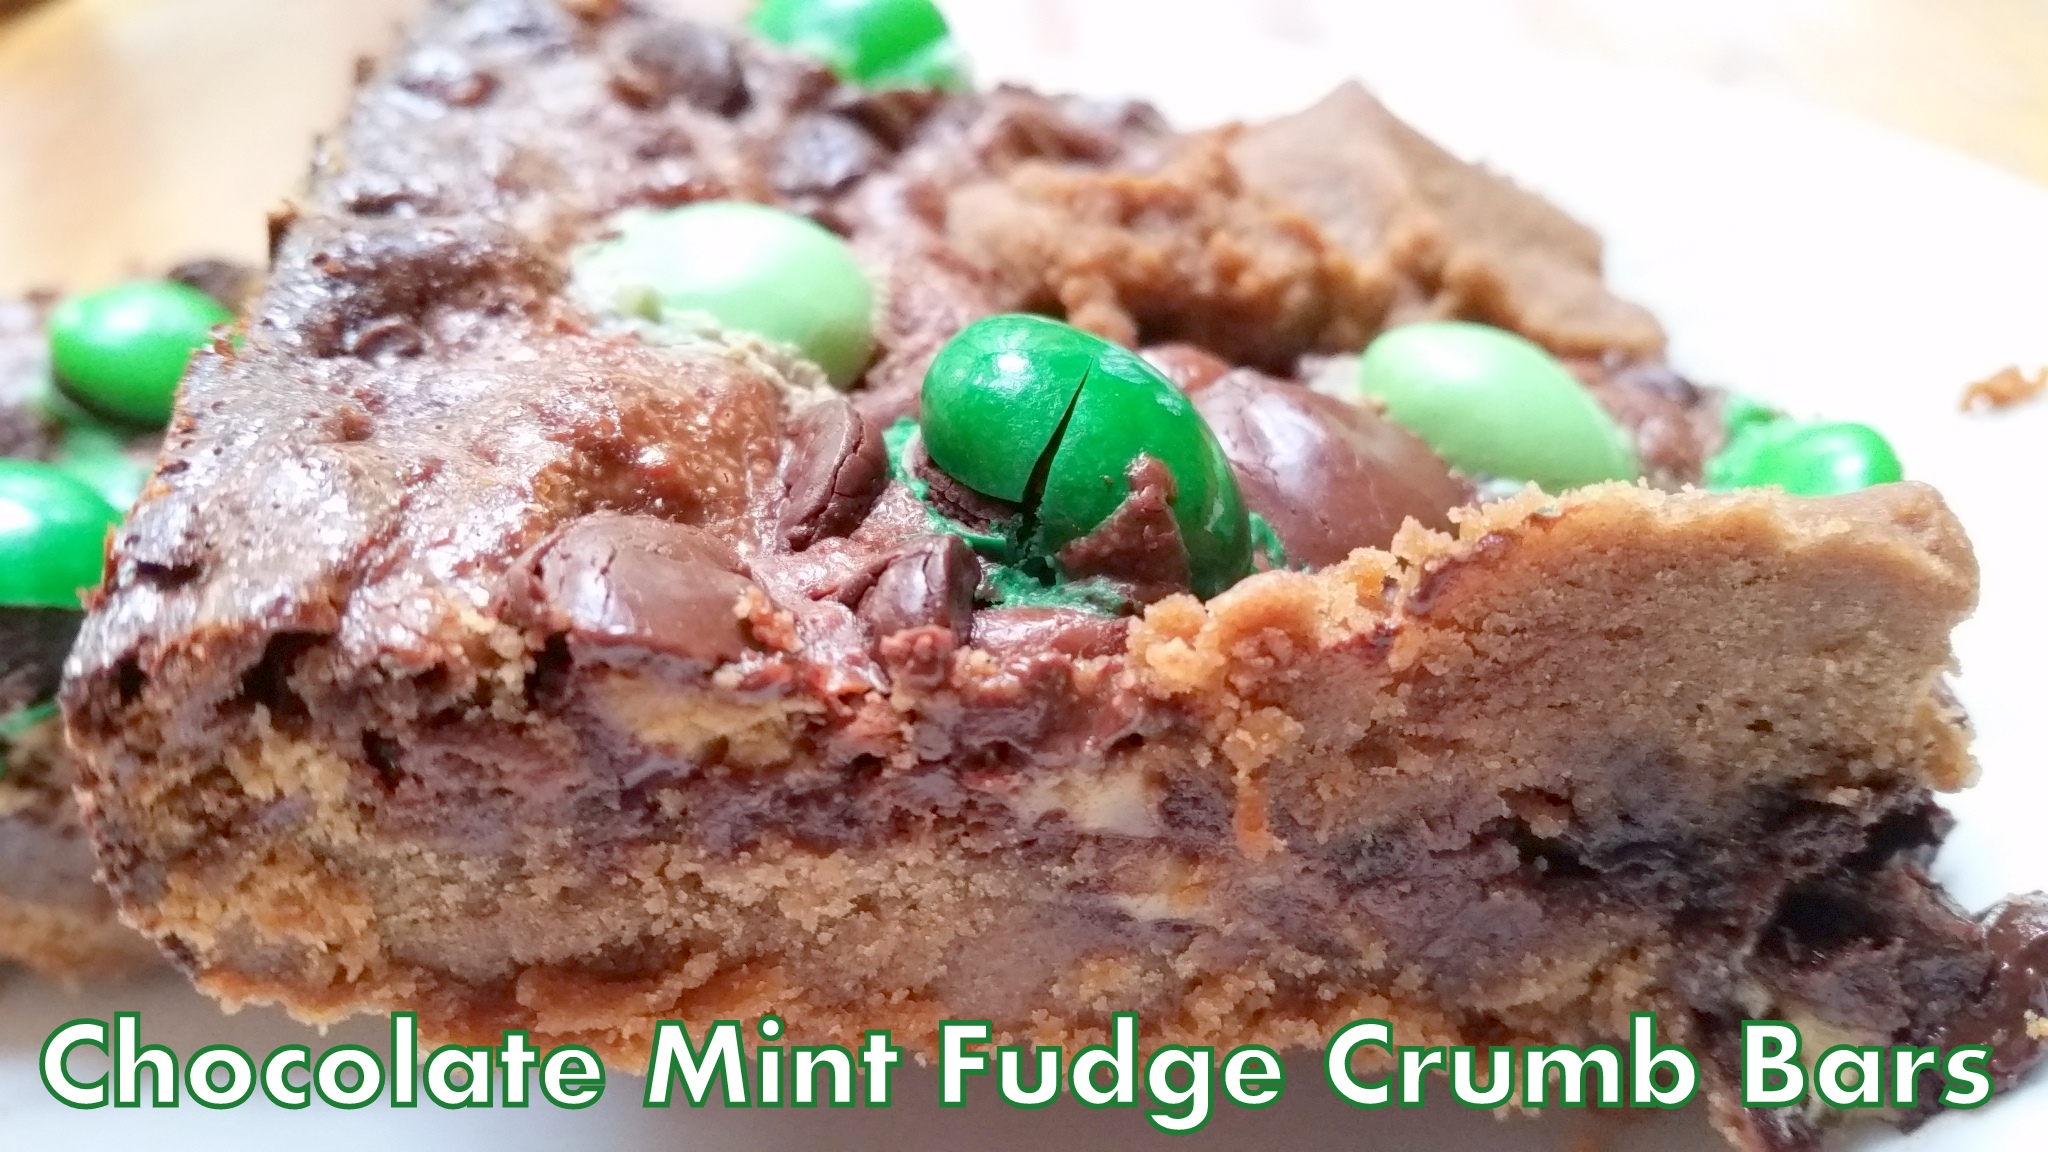 XHOXOLATE MINT FUDGE CRUMB BARS